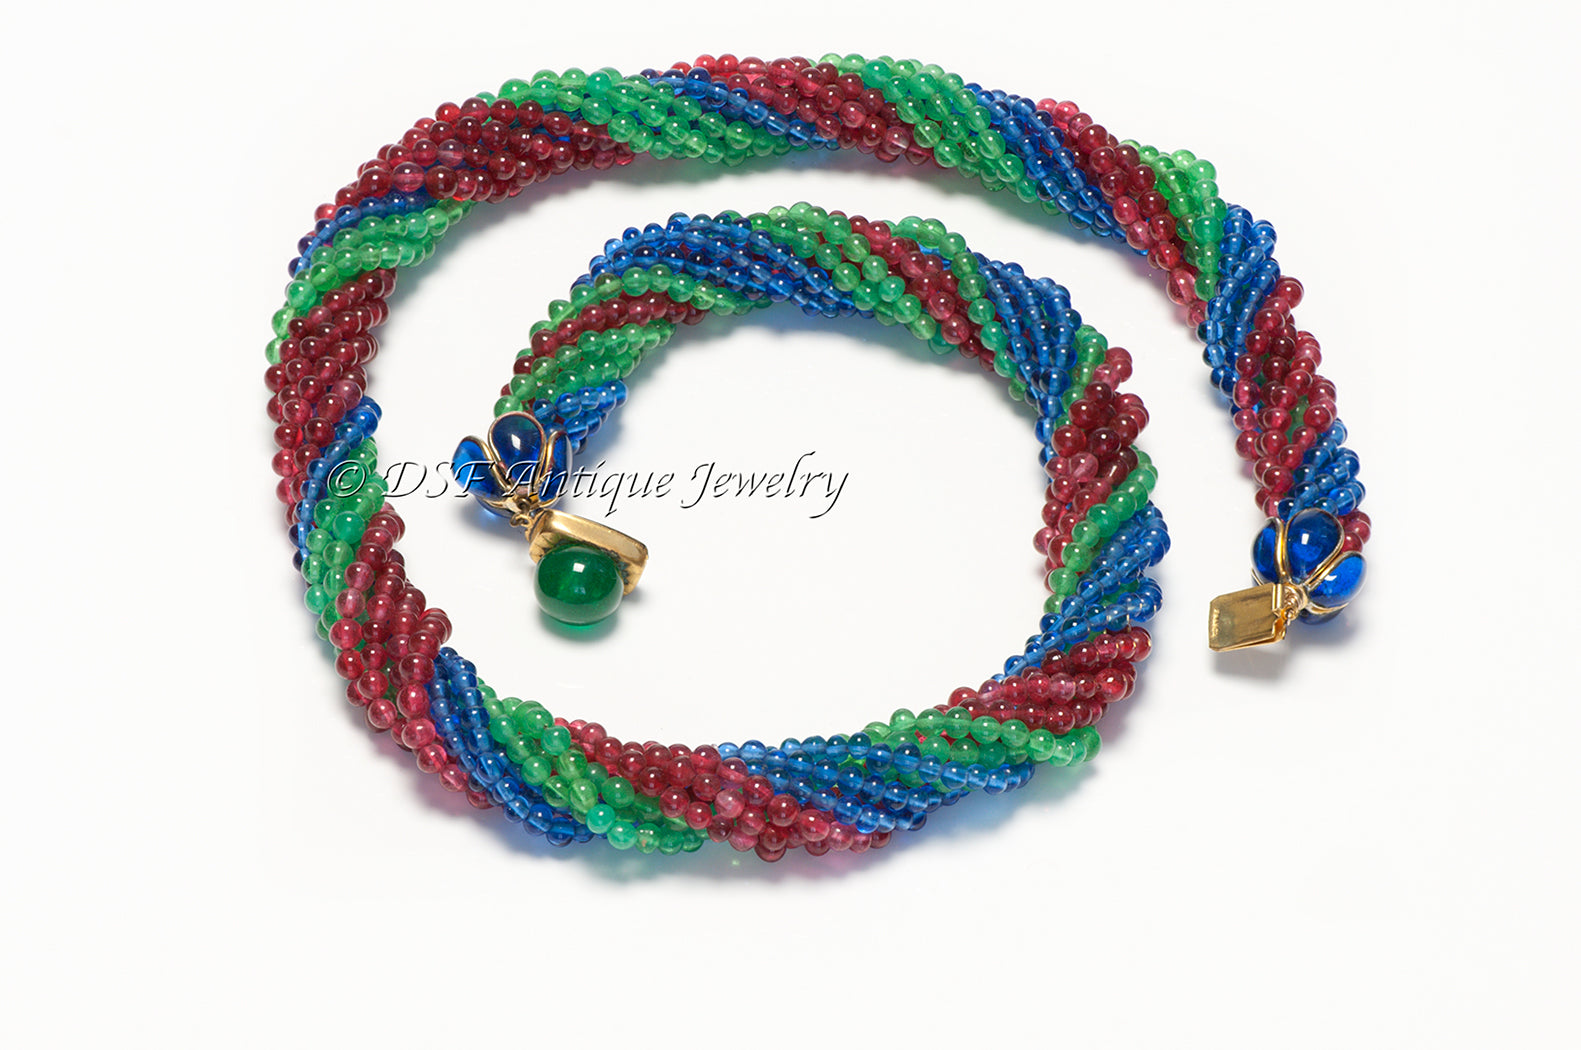 coco-chanel-gripoix-1930-s-blue-green-red-glass-beads-necklace